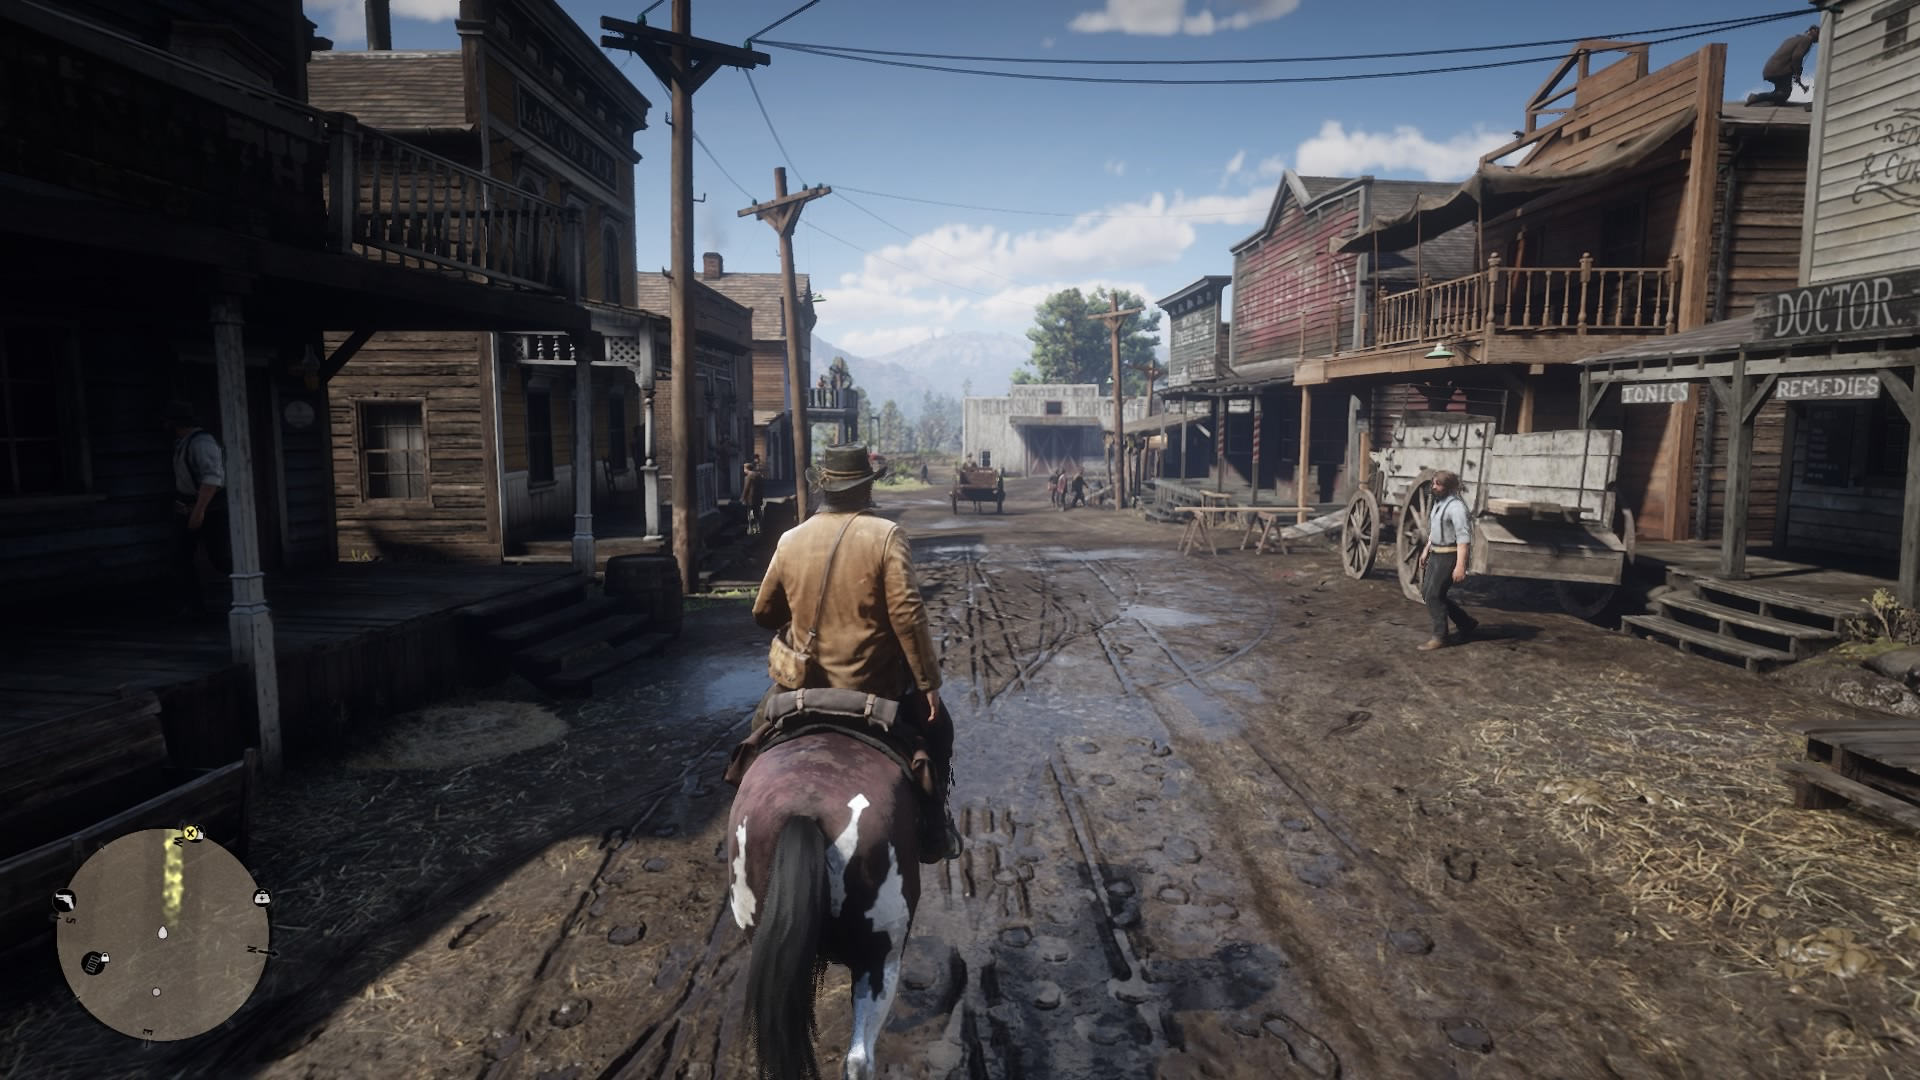 Screenshot By Jacob Ybarra (Playstation 4).  The protagonist Arthur Morgan, entering the quaint town of Valentine.